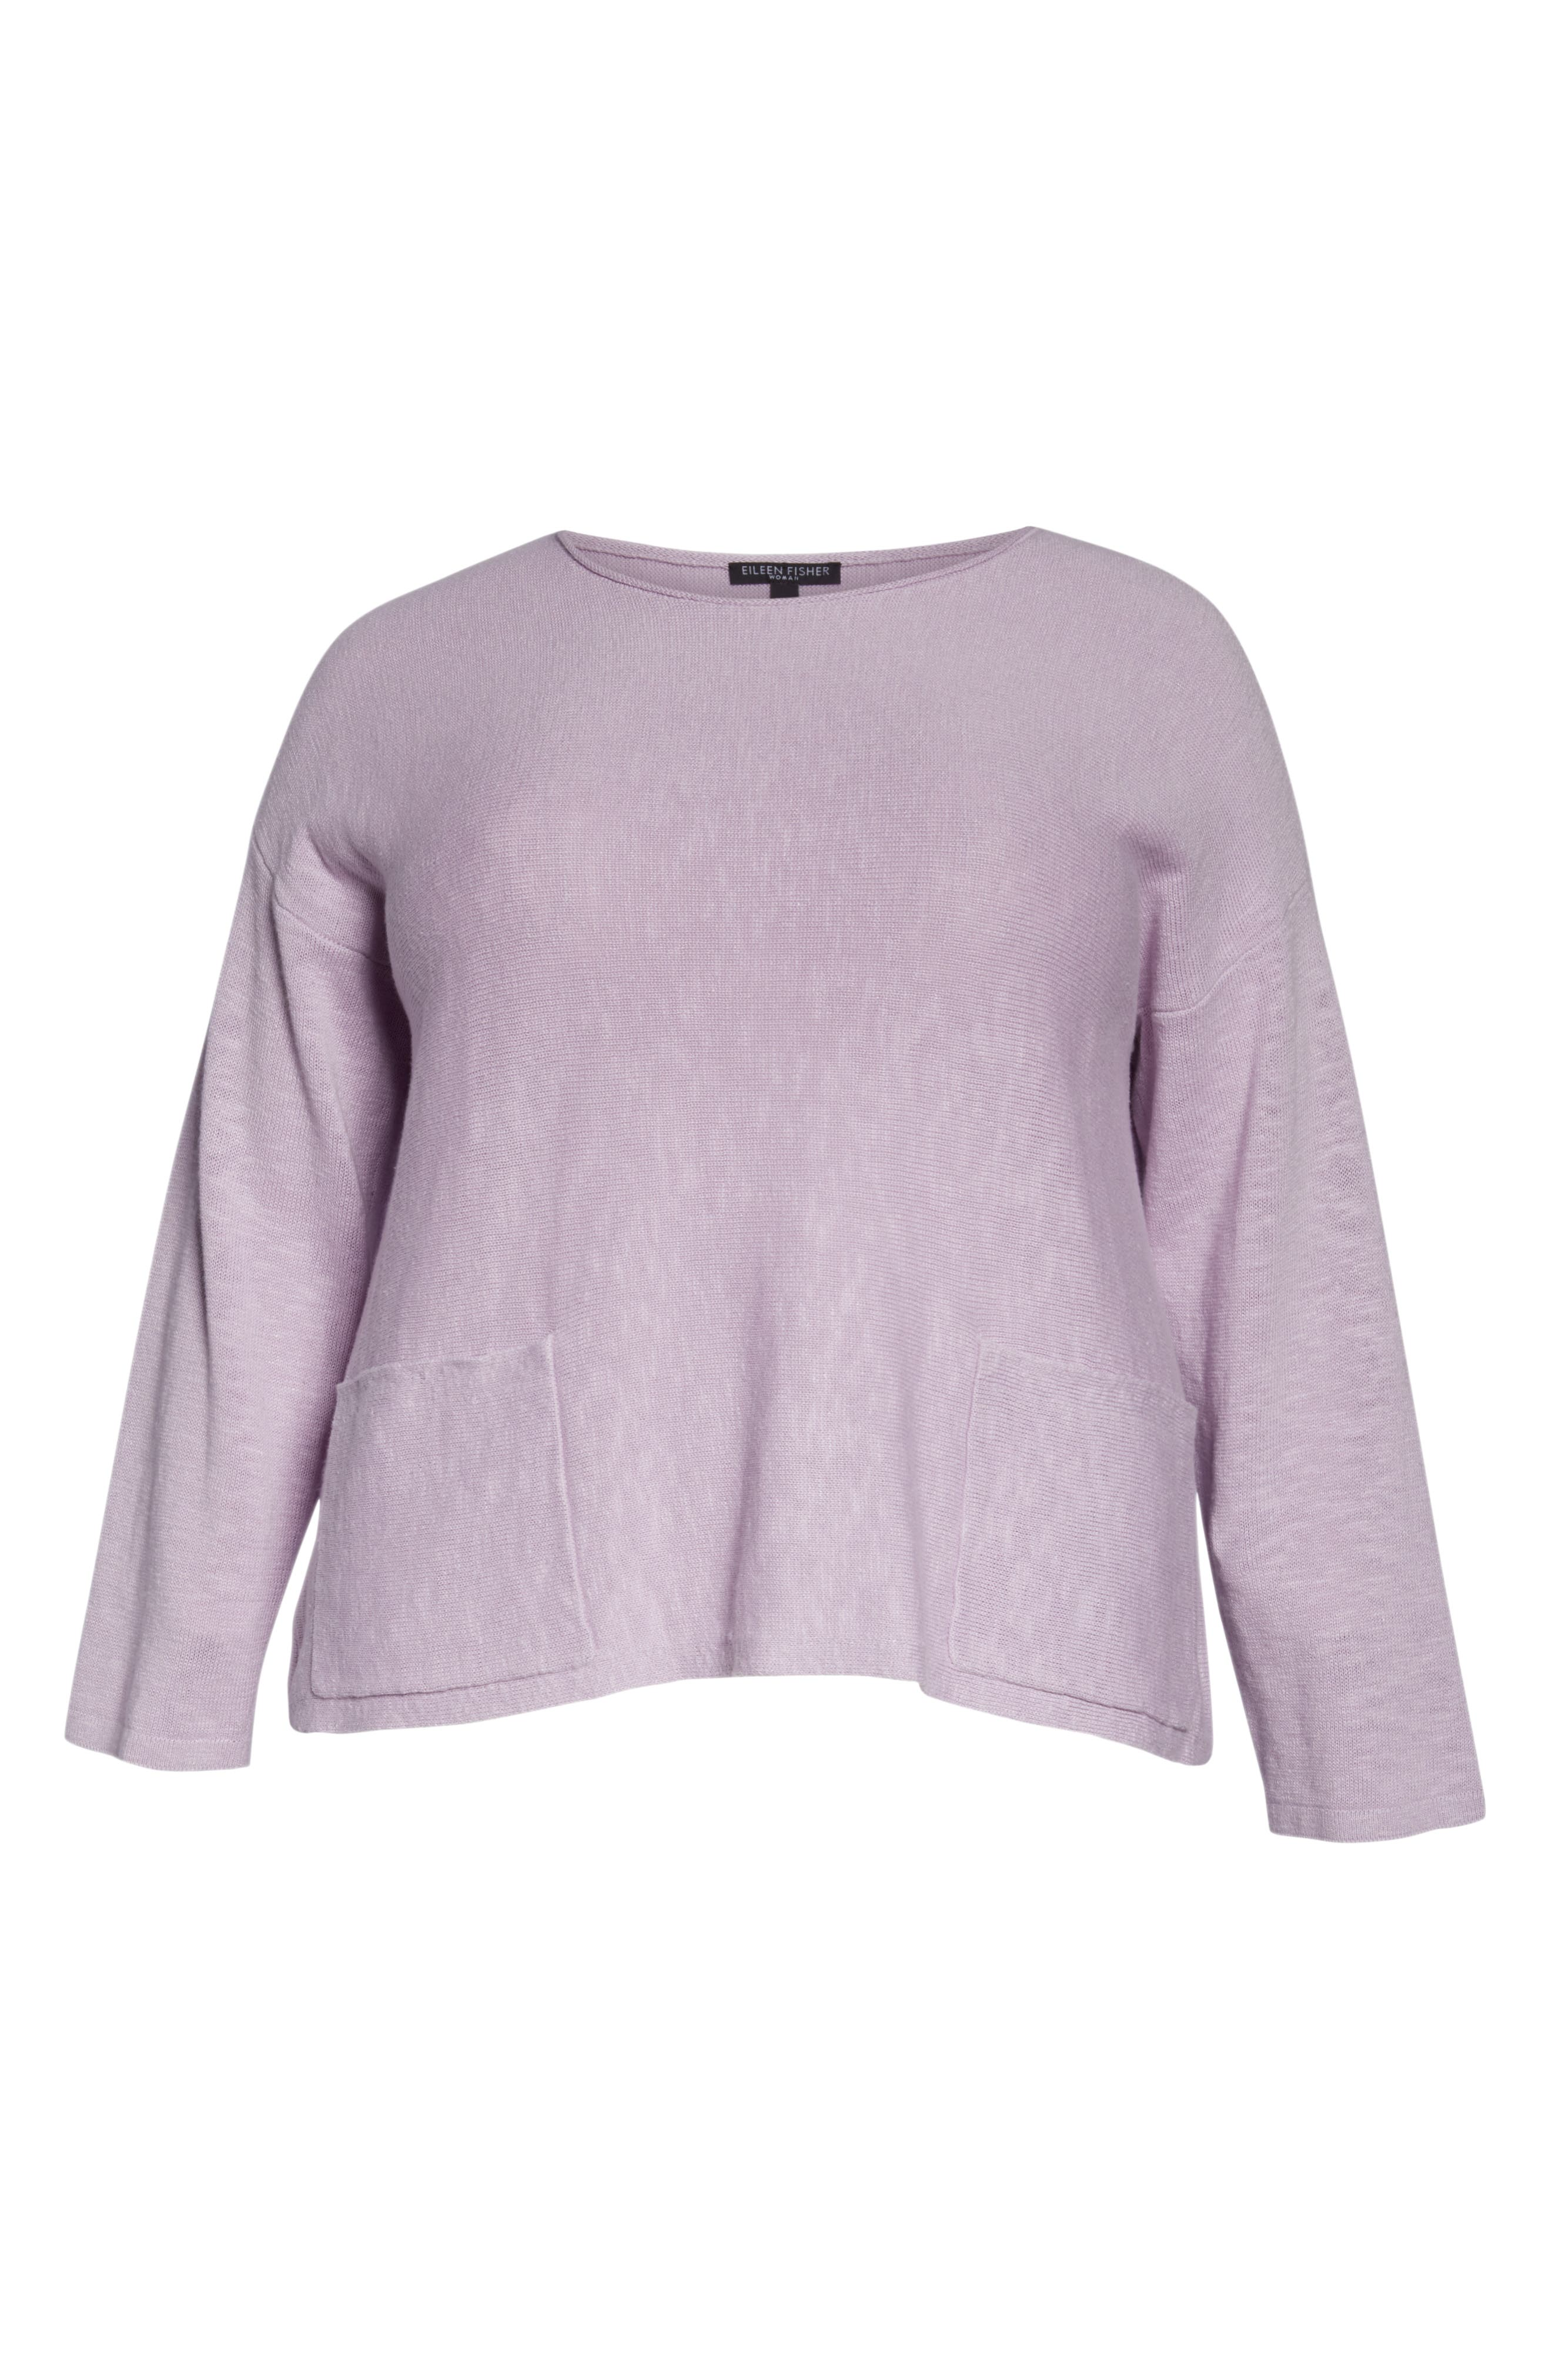 Round Neck Sweater,                             Alternate thumbnail 6, color,                             MALLOW